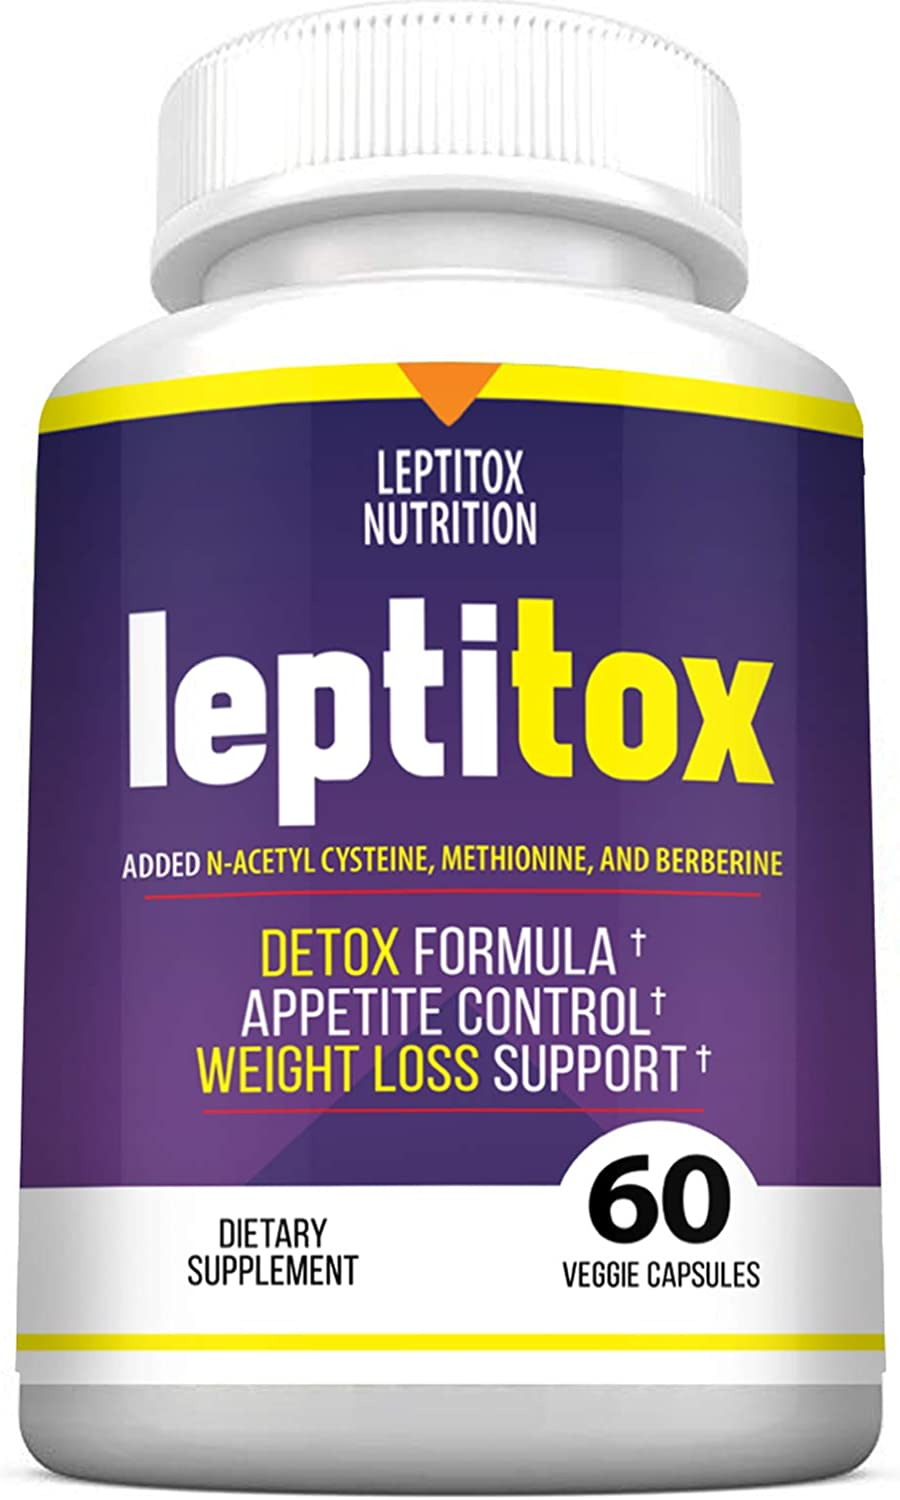 Leptitox Weight Loss Outlet Tablet Coupon 2020